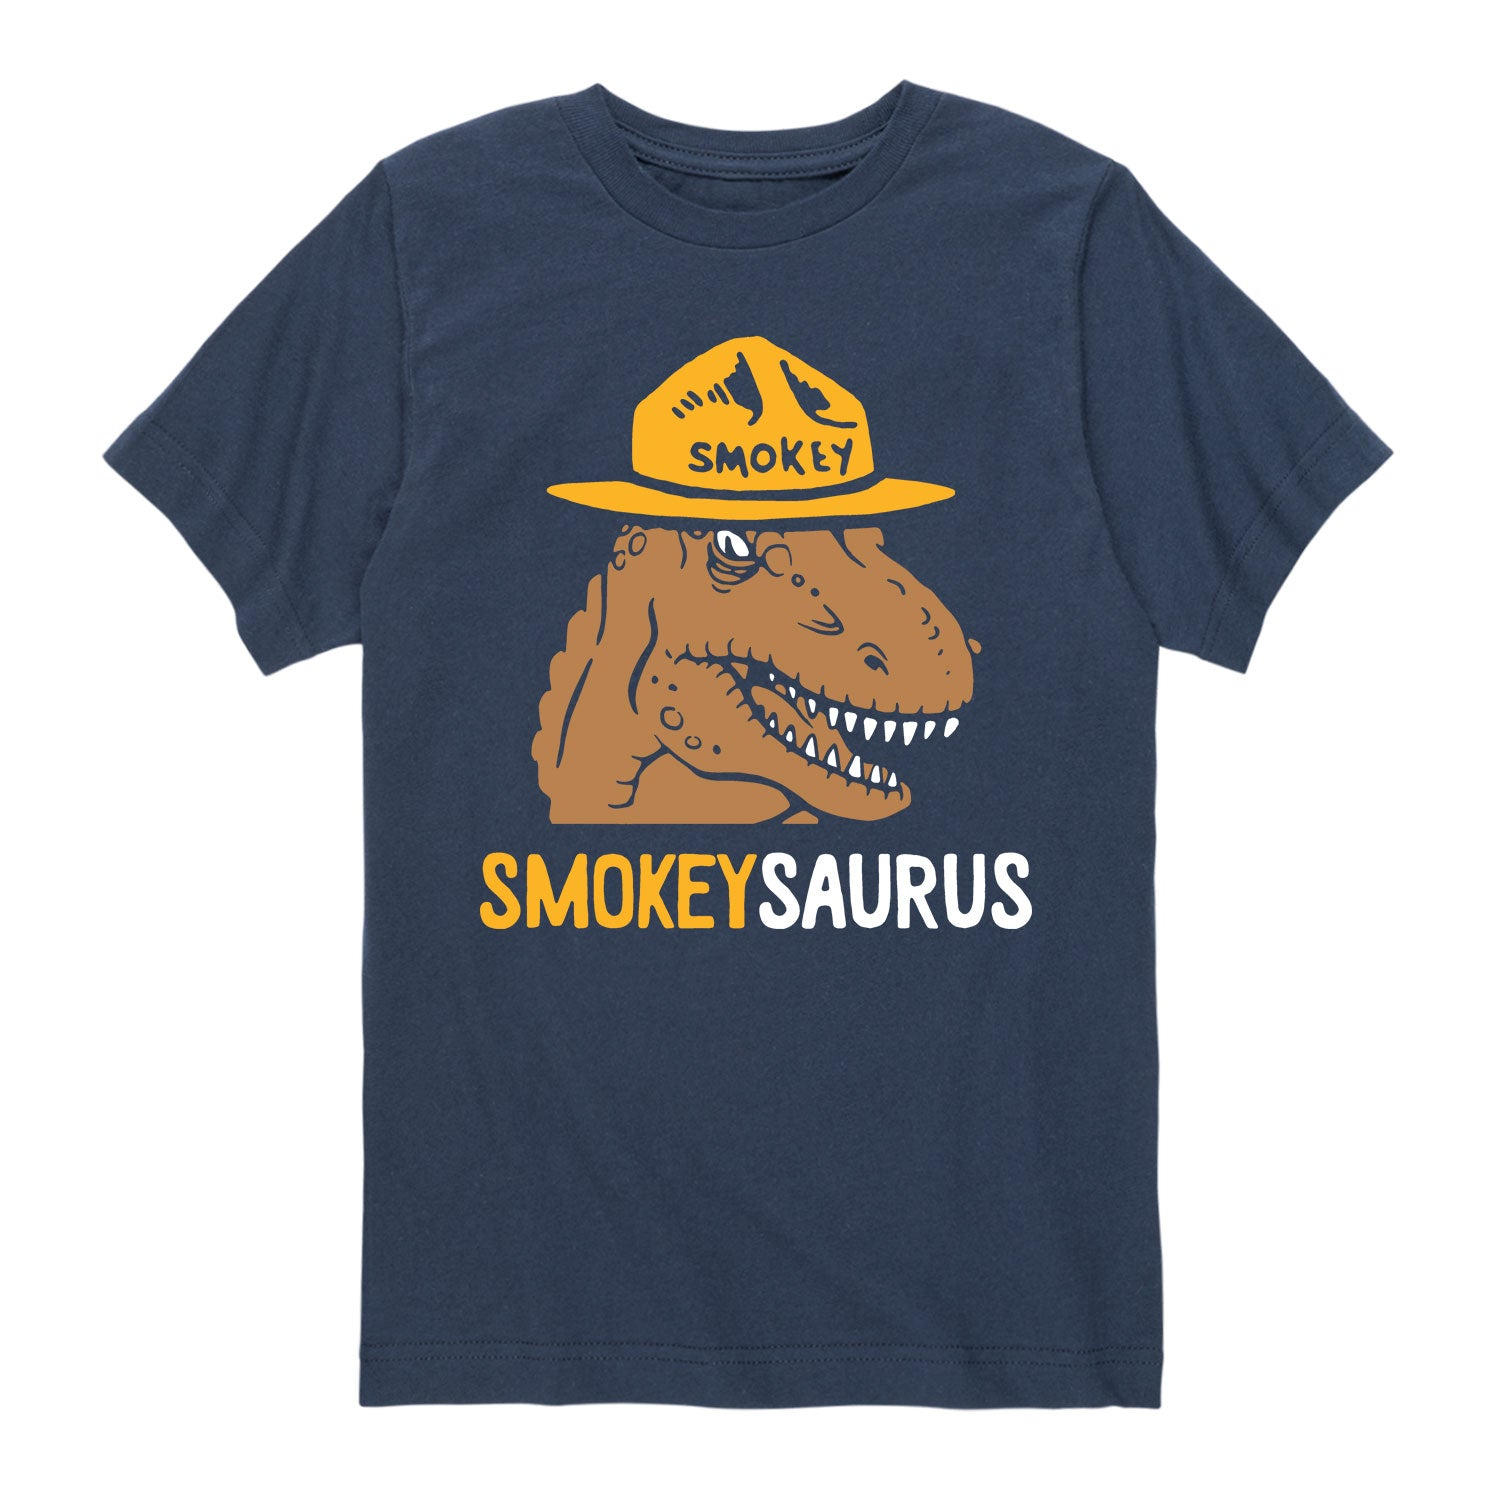 Smokeysaurus - Youth & Toddler Short Sleeve T-Shirt